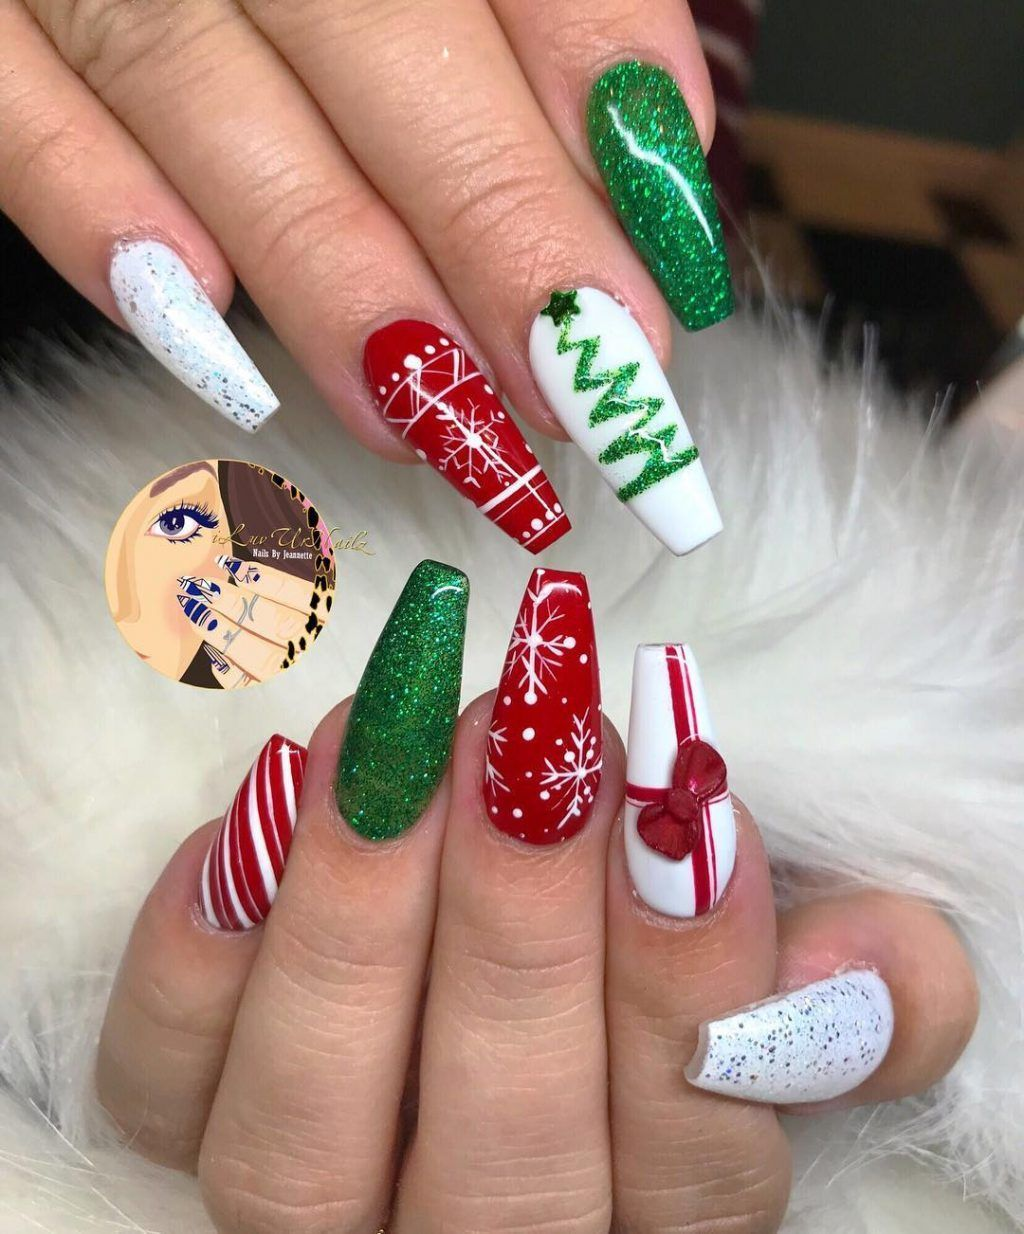 The Cutest And Festive Christmas Nail Designs For Celebration Stunning Coffin Shaped Green In 2020 Red Christmas Nails Cute Christmas Nails Christmas Nails Acrylic